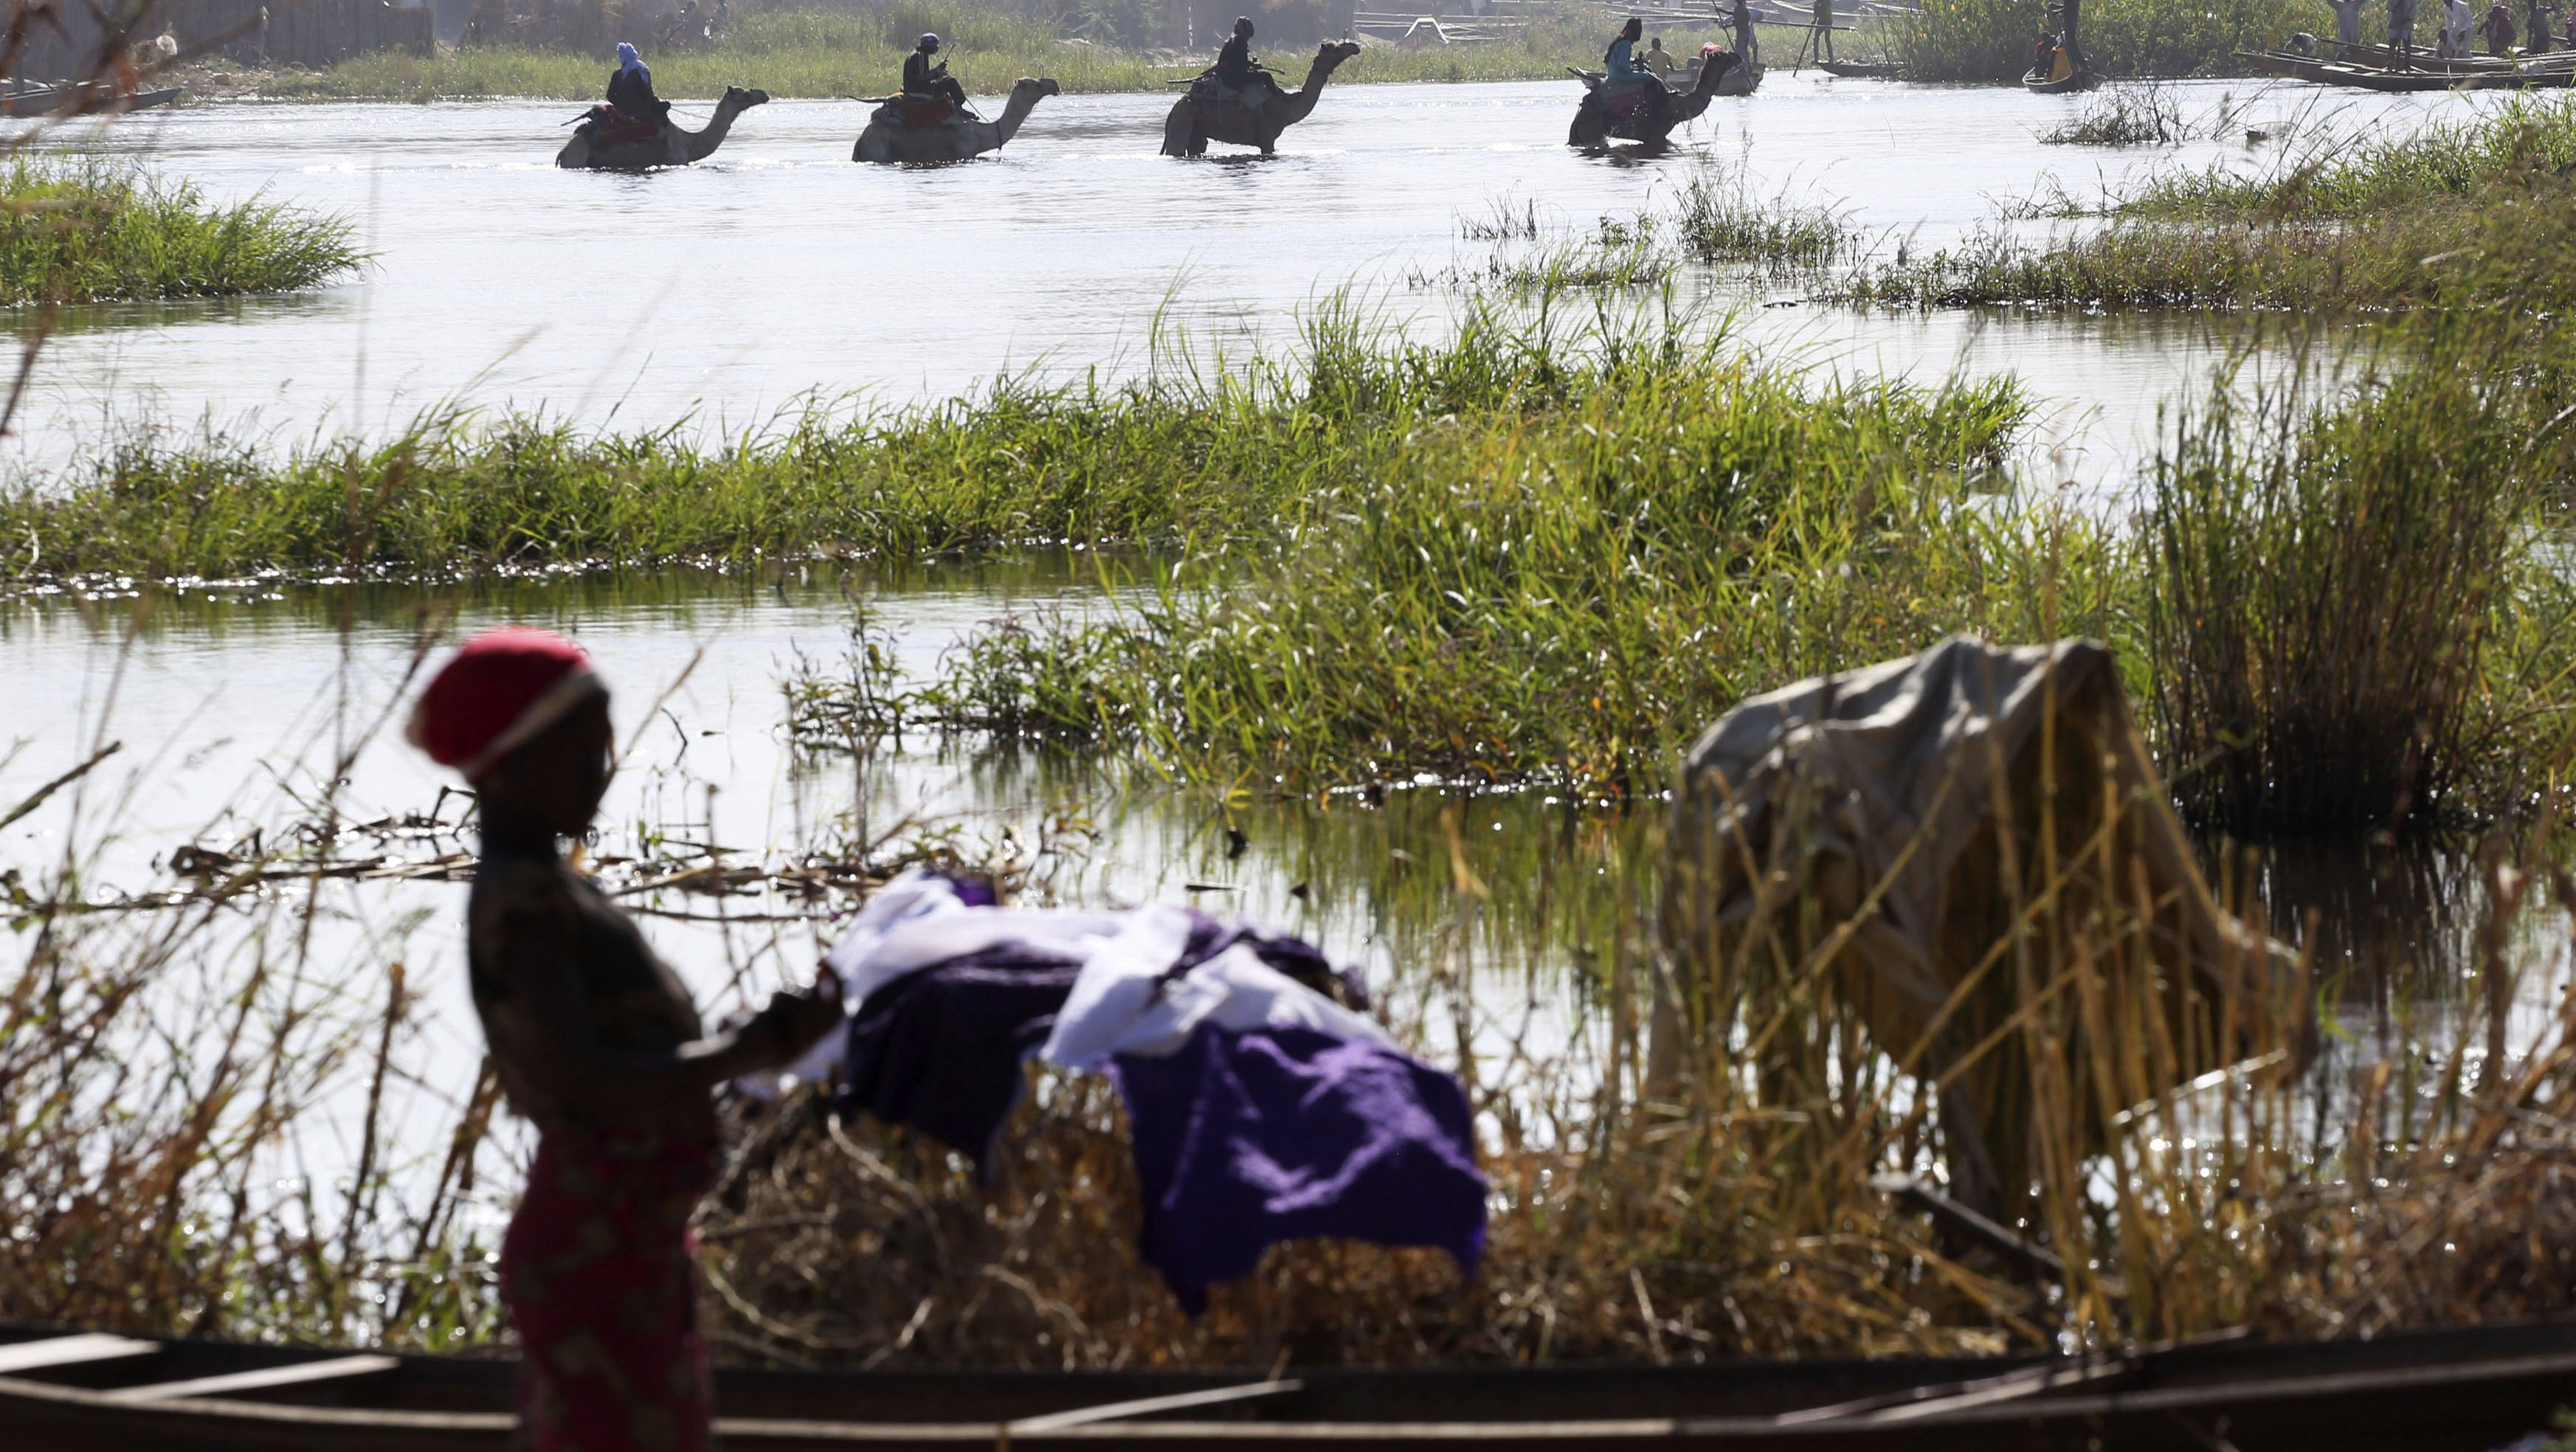 Men on camels cross the water as a woman washes clothes in Lake Chad in Ngouboua